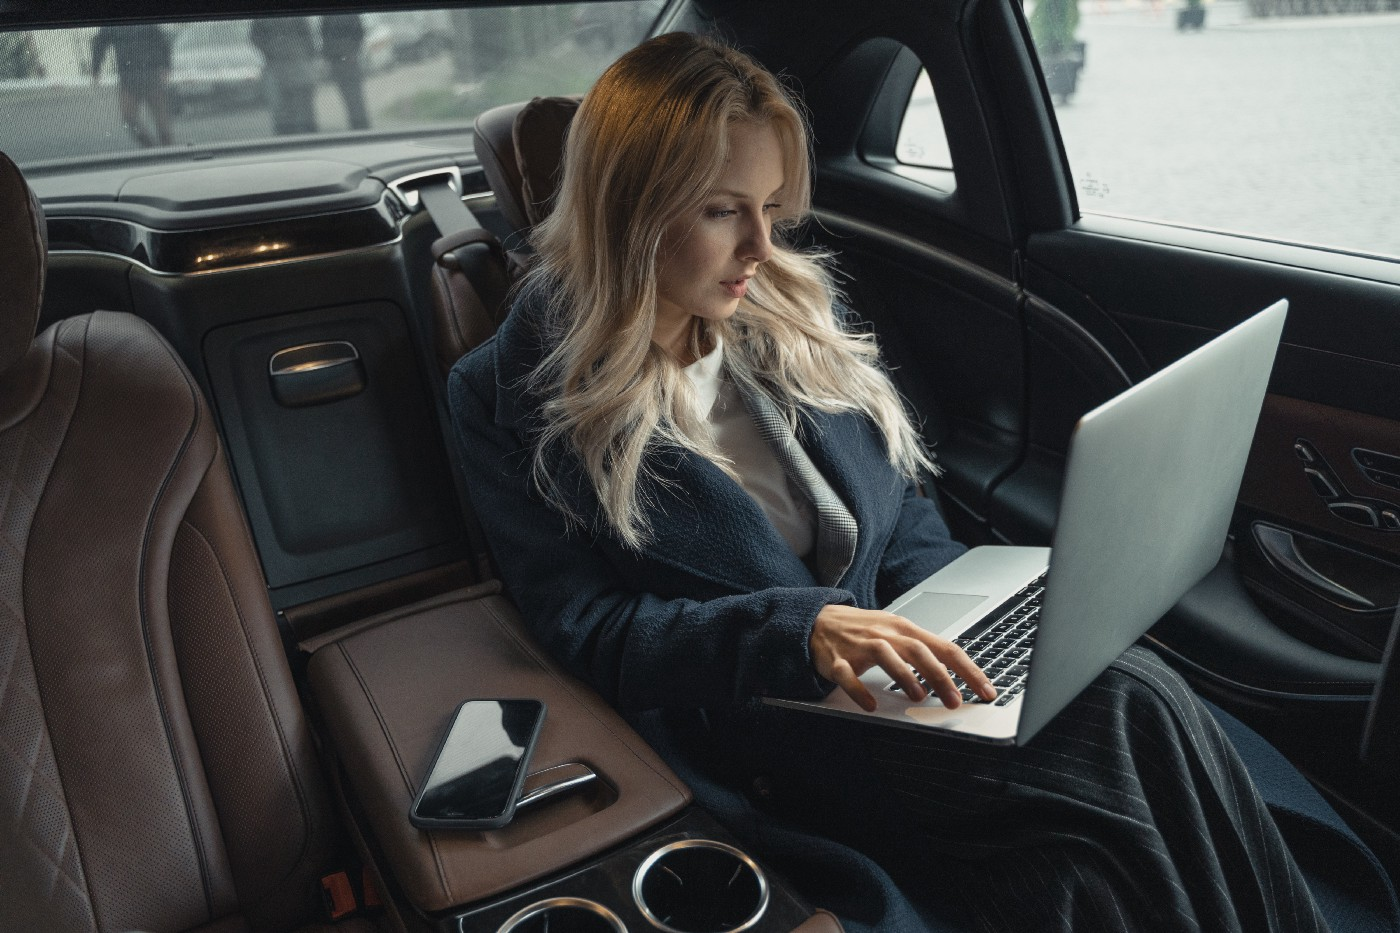 The mythical wealthy writer types on her computer in the back of a luxury car.